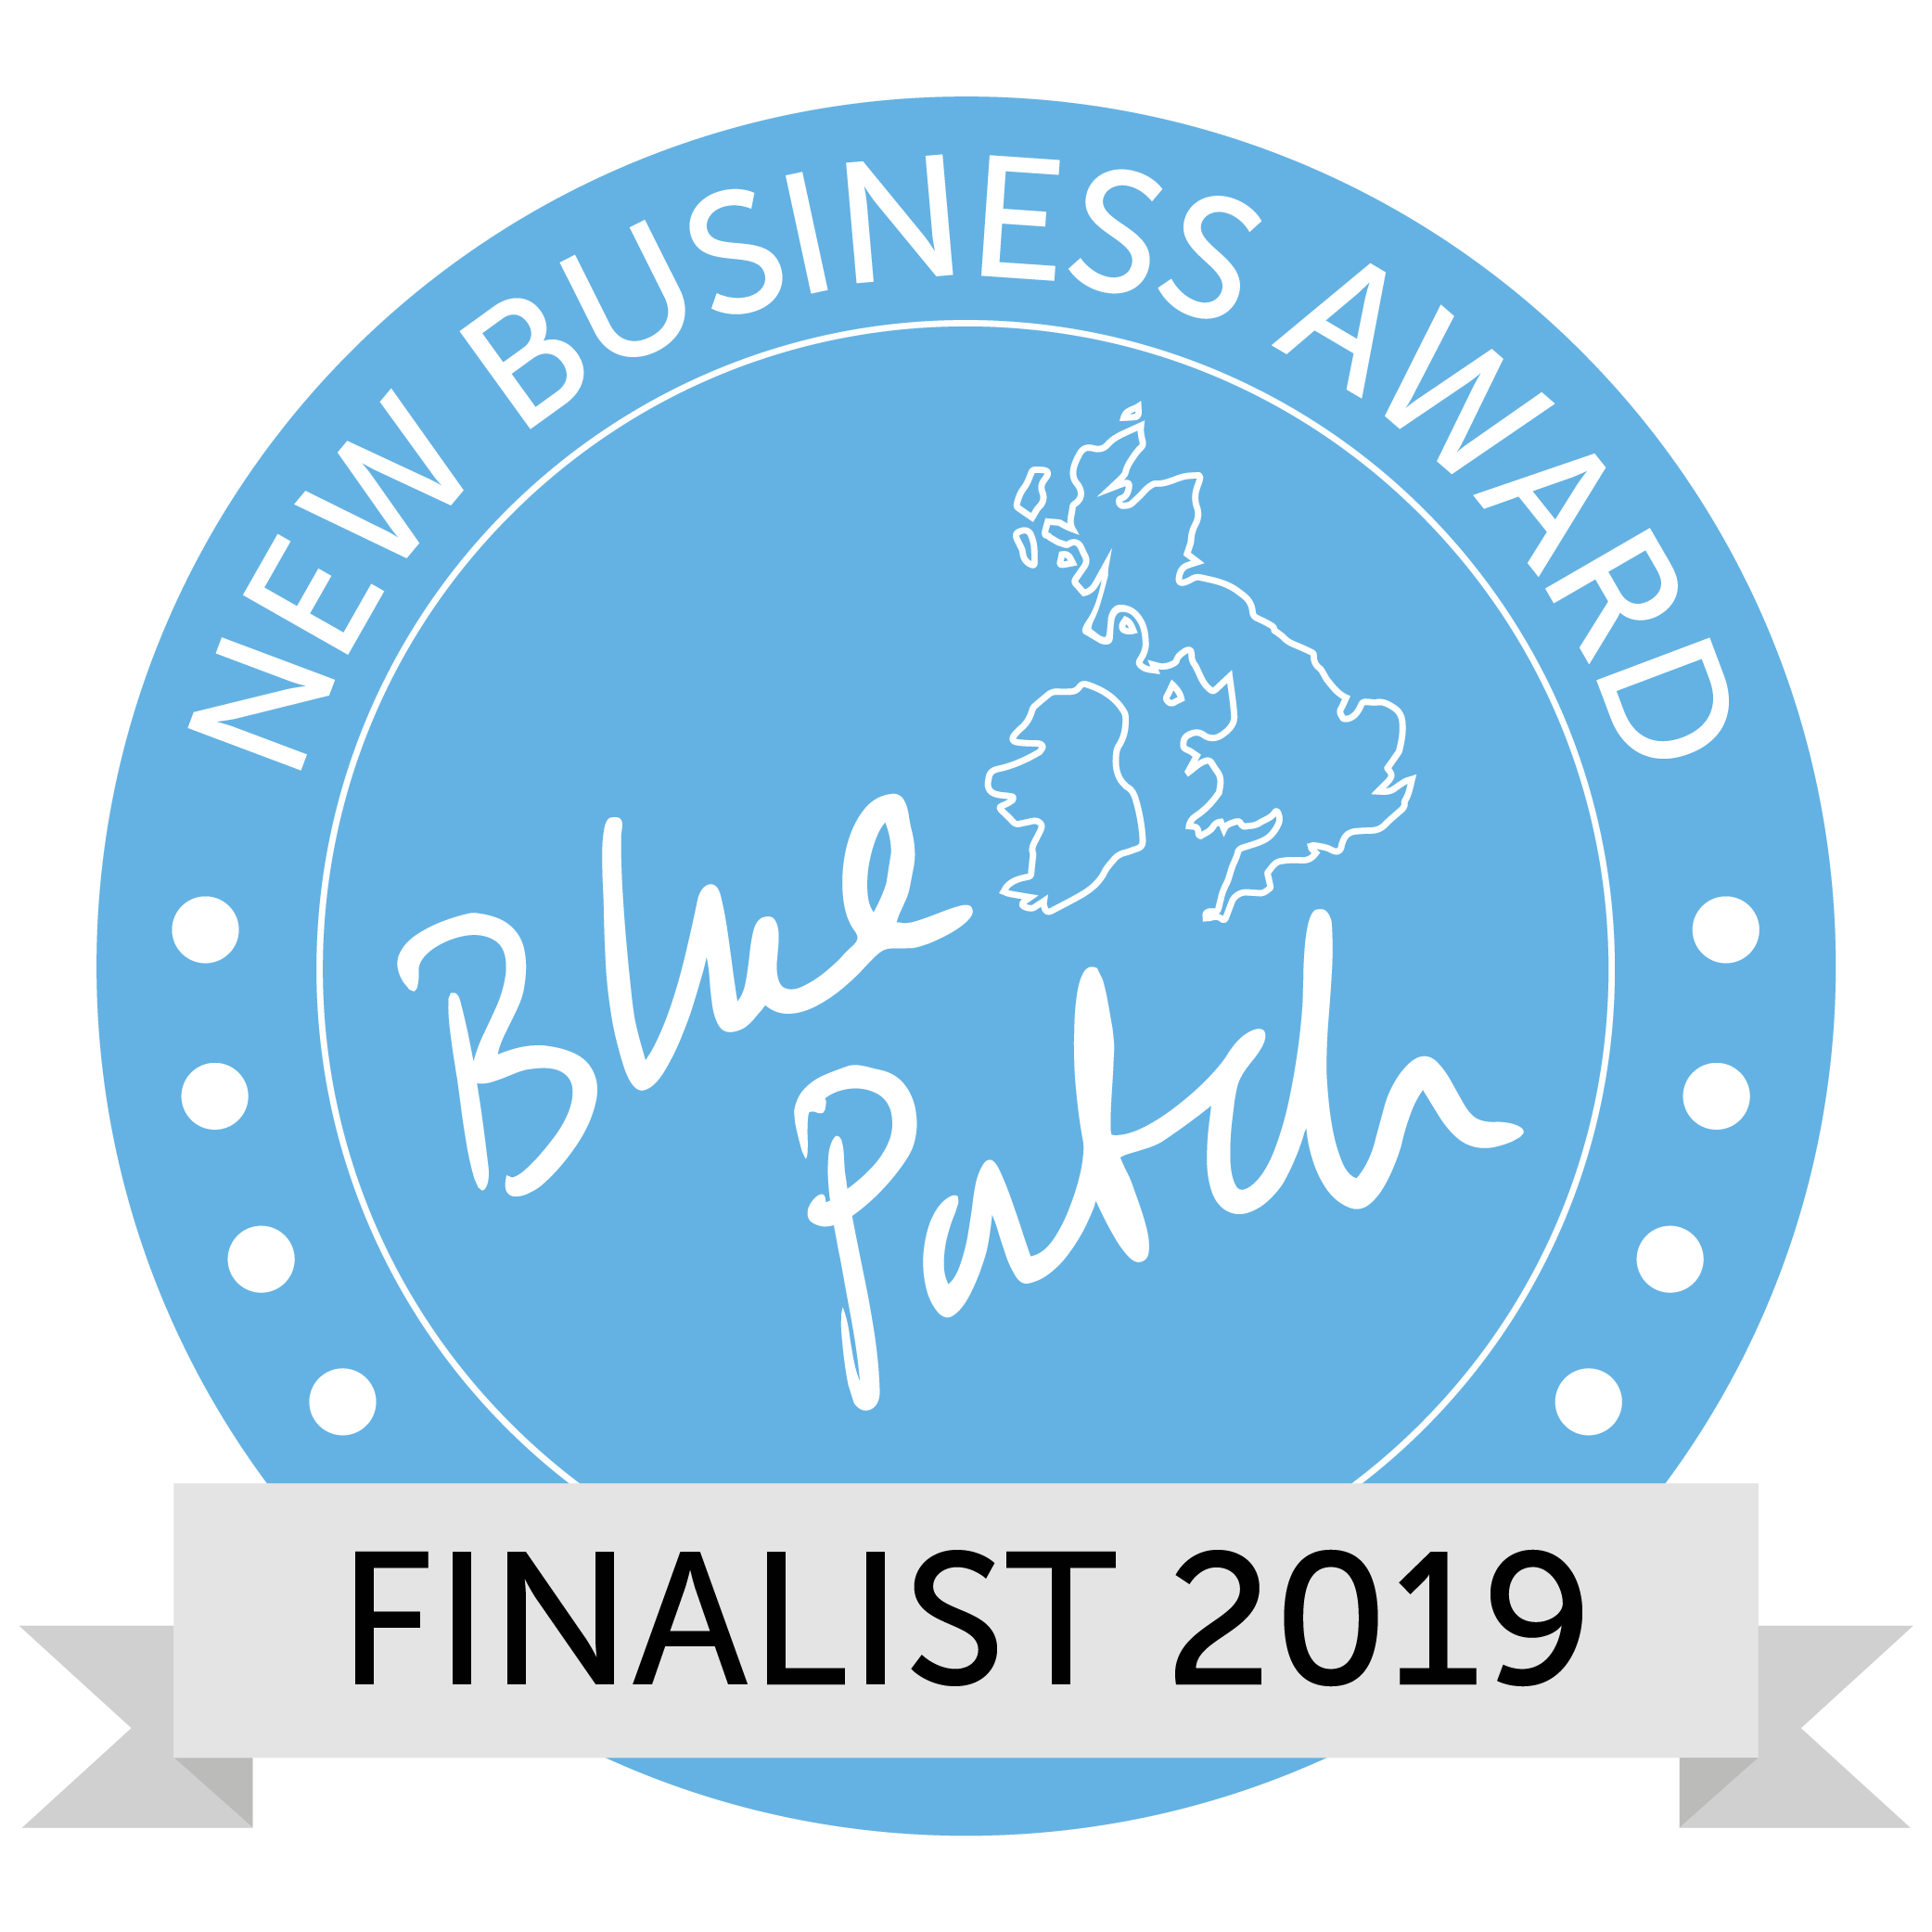 New Business Award 2019-02.png